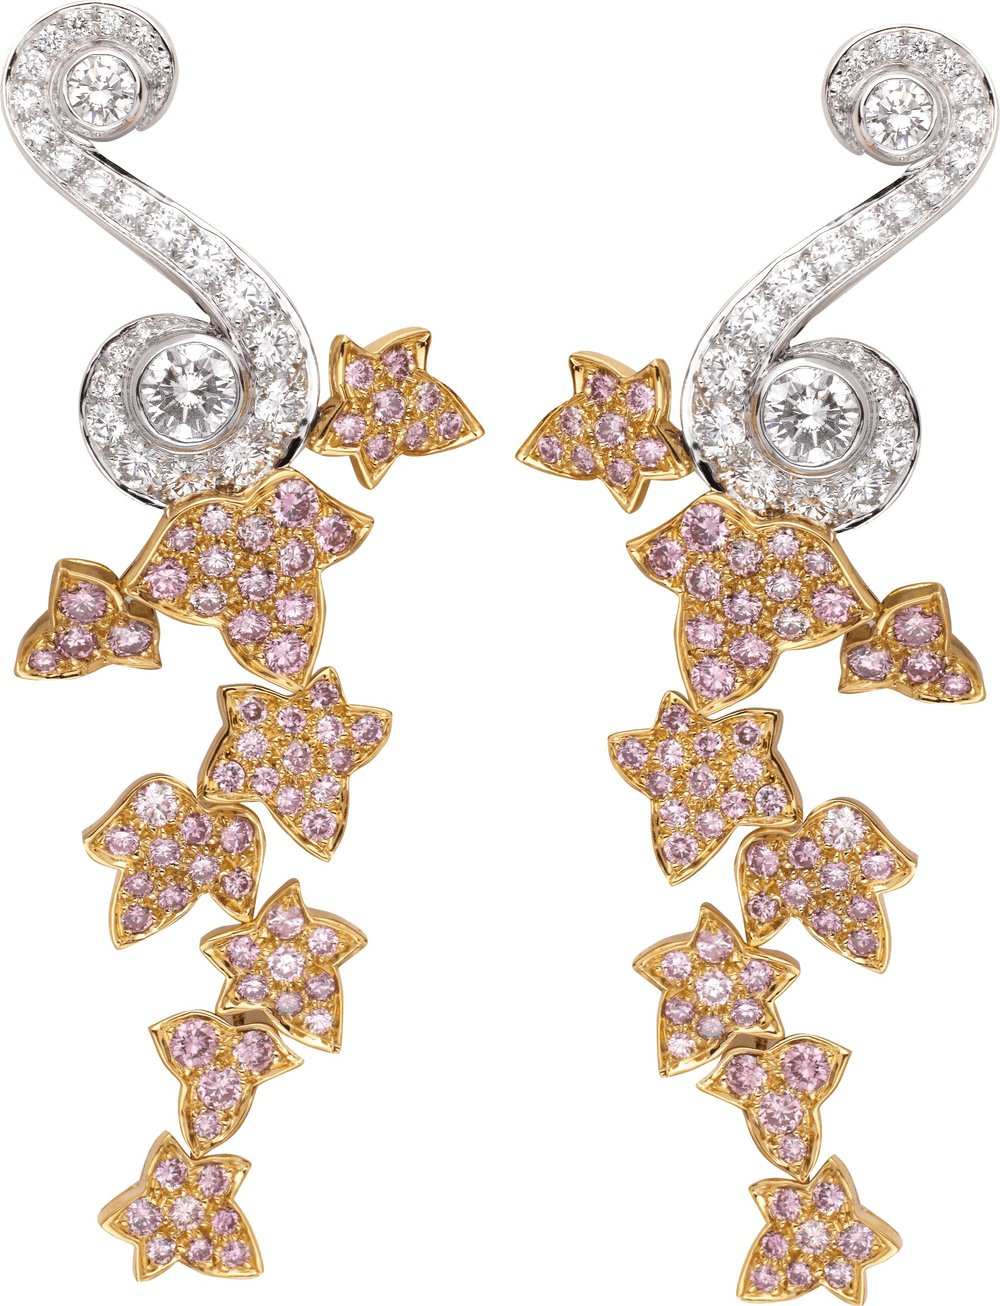 "18k White and Rose Gold ""Jardin des Délices"" Earrings Featuring Pink and White Diamonds by Van Cleef & Arpels"